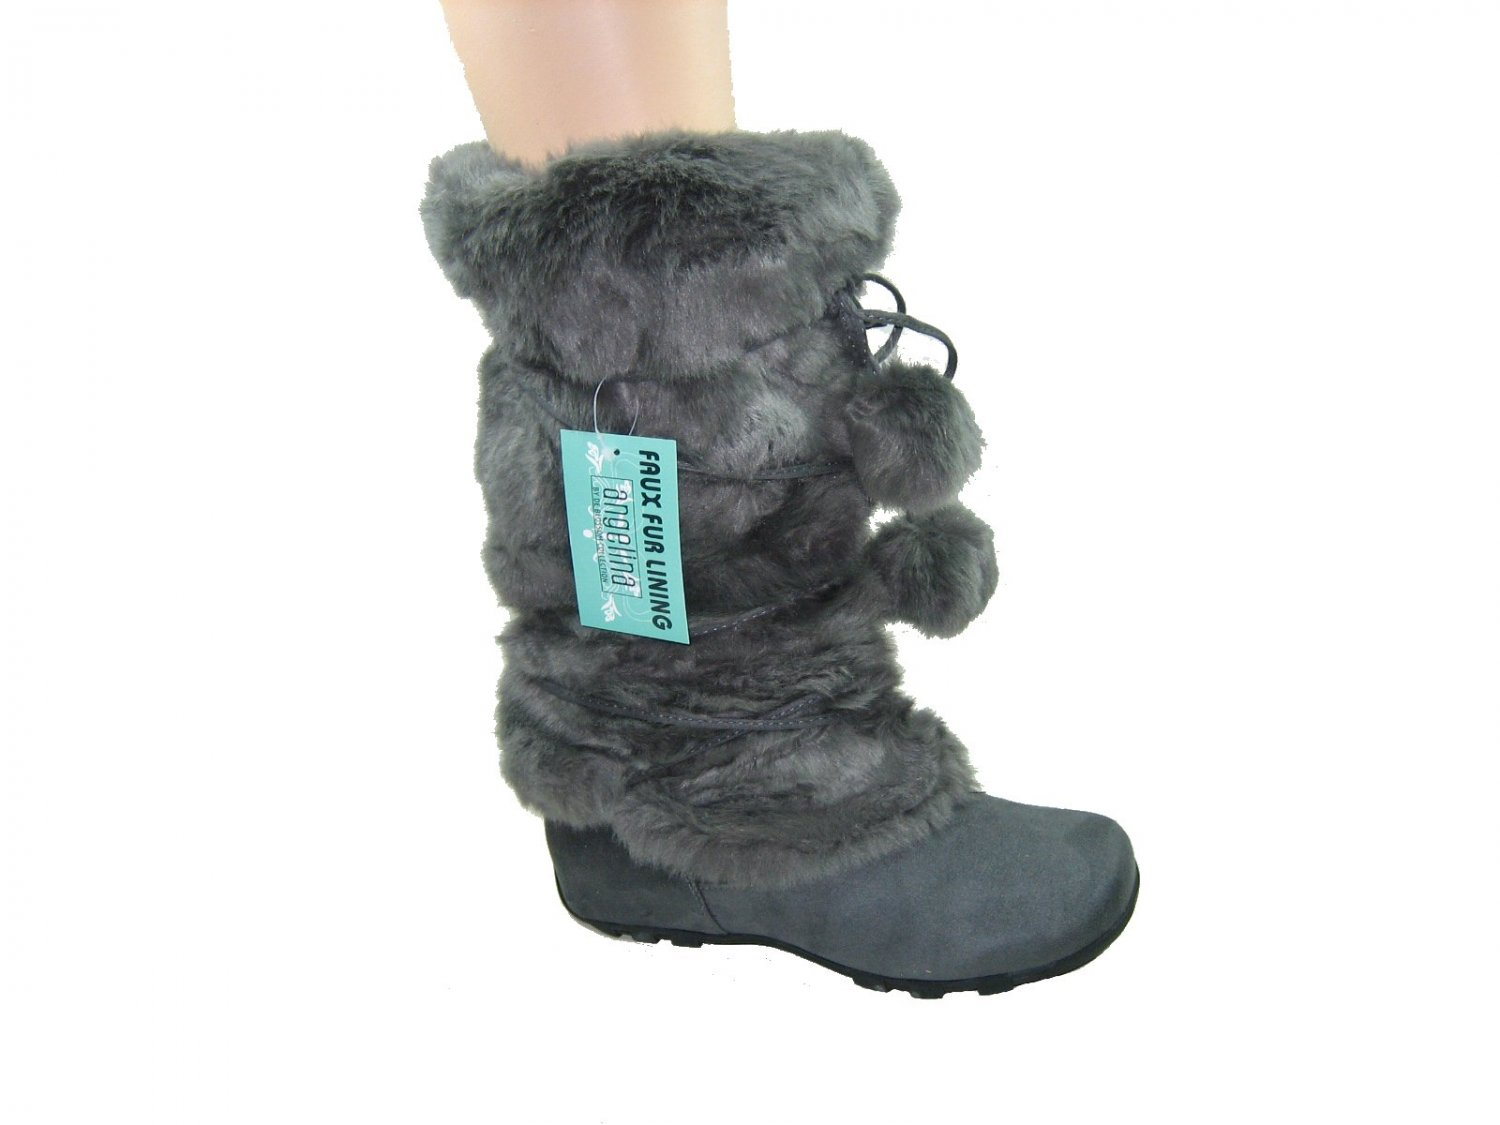 Blossom women's fashion gray faux suede mid-calf faux fur pom pom winter boots size 10